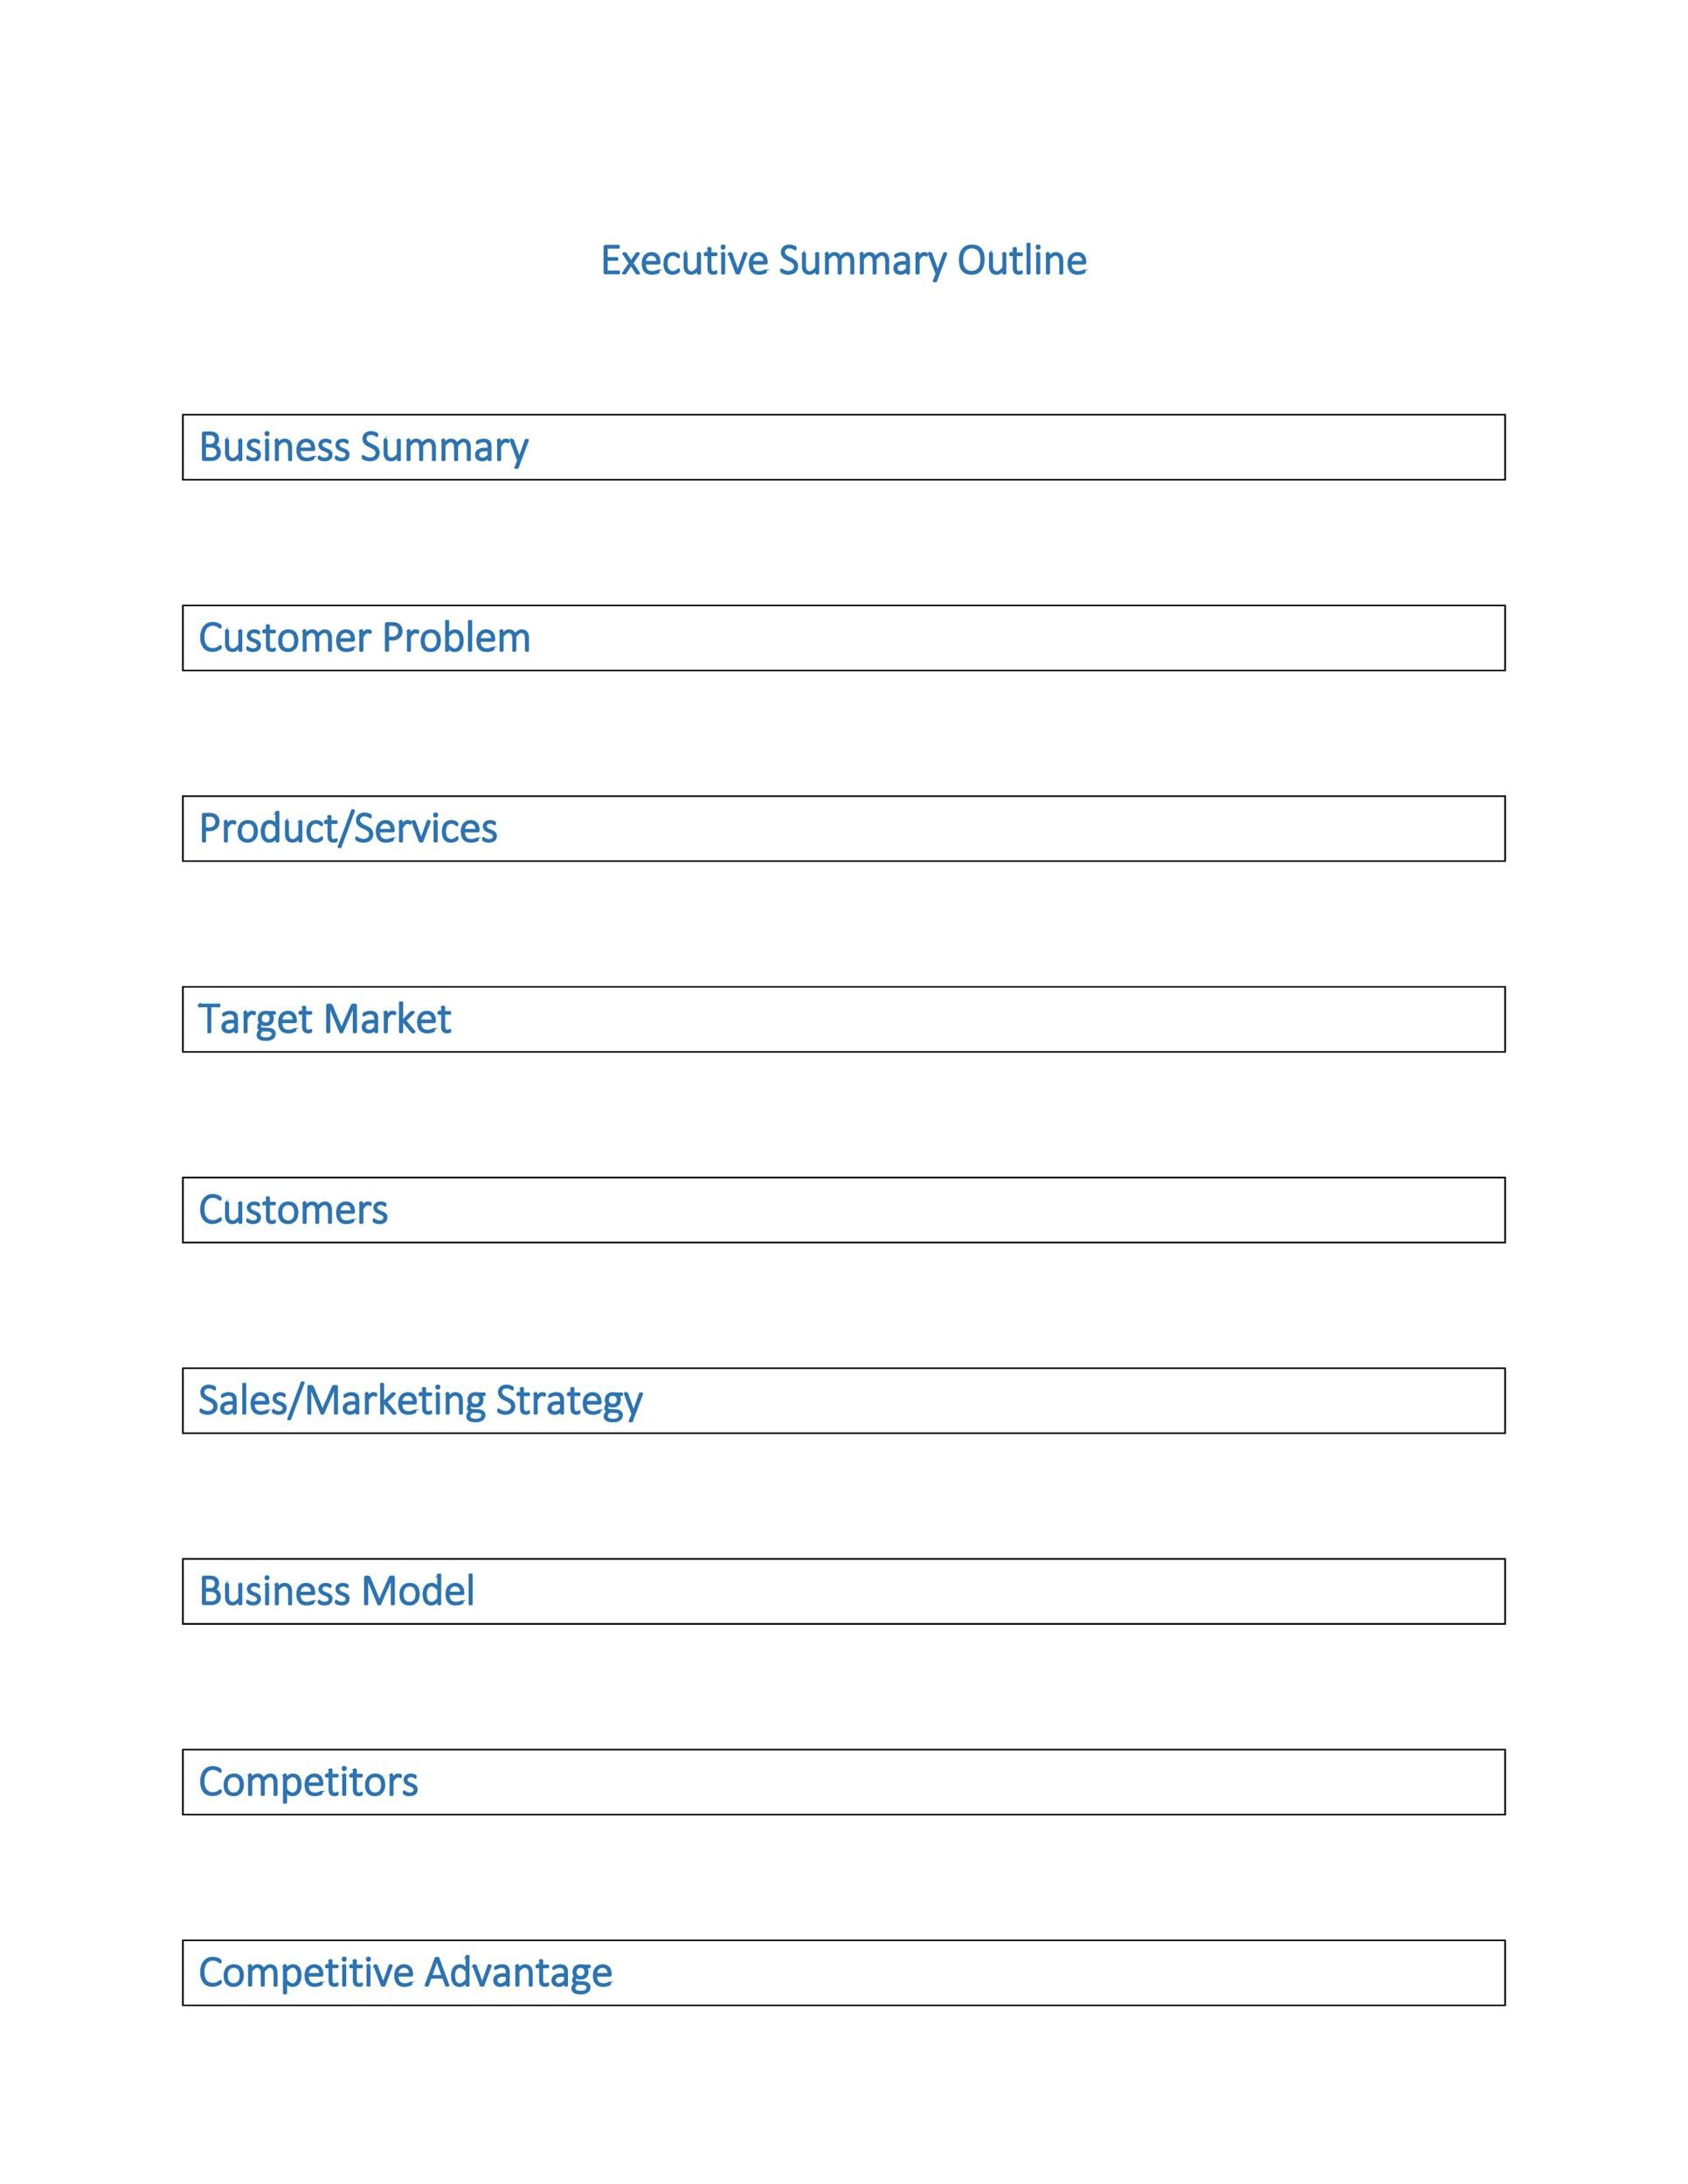 Free Executive Summary Template 17